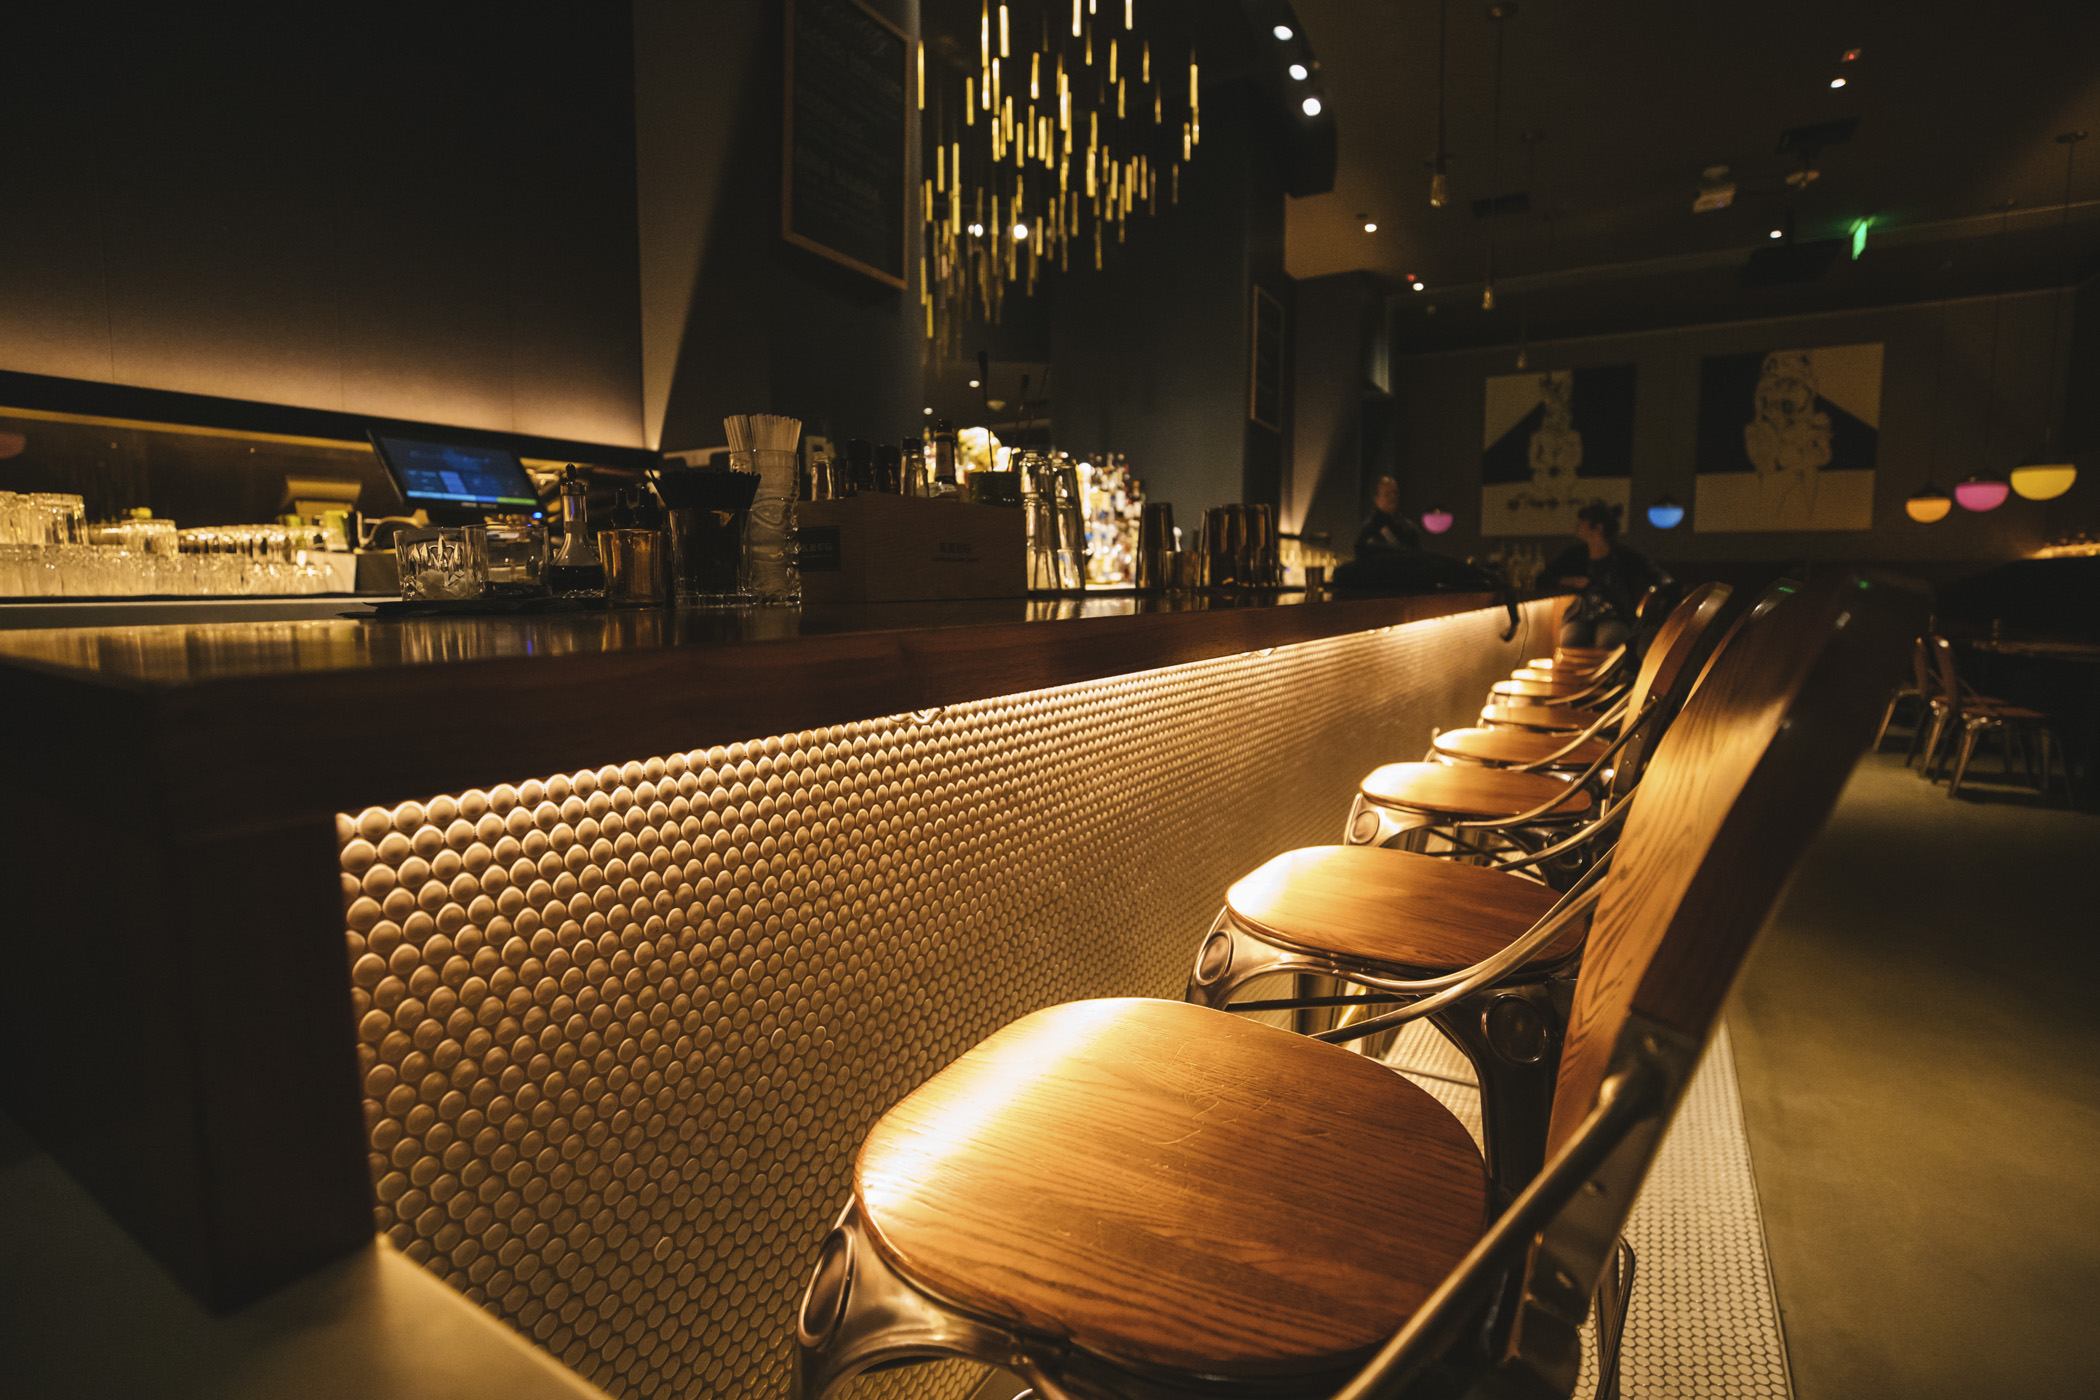 "Welcome to{&nbsp;}<a  href=""https://www.civilityandunrest.com/"" target=""_blank"" title=""https://www.civilityandunrest.com/"">Civility & Unrest</a>, a speakeasy in Bellevue. You can find this secretive little bar and lounge through the W Hotel valet entrance, under the stairs and to the left of the iPhone. Very specific, I know.{&nbsp;}<a  href=""https://www.civilityandunrest.com/"" target=""_blank"" title=""https://www.civilityandunrest.com/"">Civility & Unrest</a>{&nbsp;}is ""inspired by the cocktail culture and underground speakeasies of a bygone era."" The bar showcases the finest in world-renowned vintage spirits, local craft distillers, flowing Champagne and sparkling selections and local micro brews. You can start your evening by beginning beginning ""with a level of Civility,""and when your inhibitions have left the building, venture over to Unrest. (Image: Sunita Martini / Seattle Refined).{&nbsp;}"